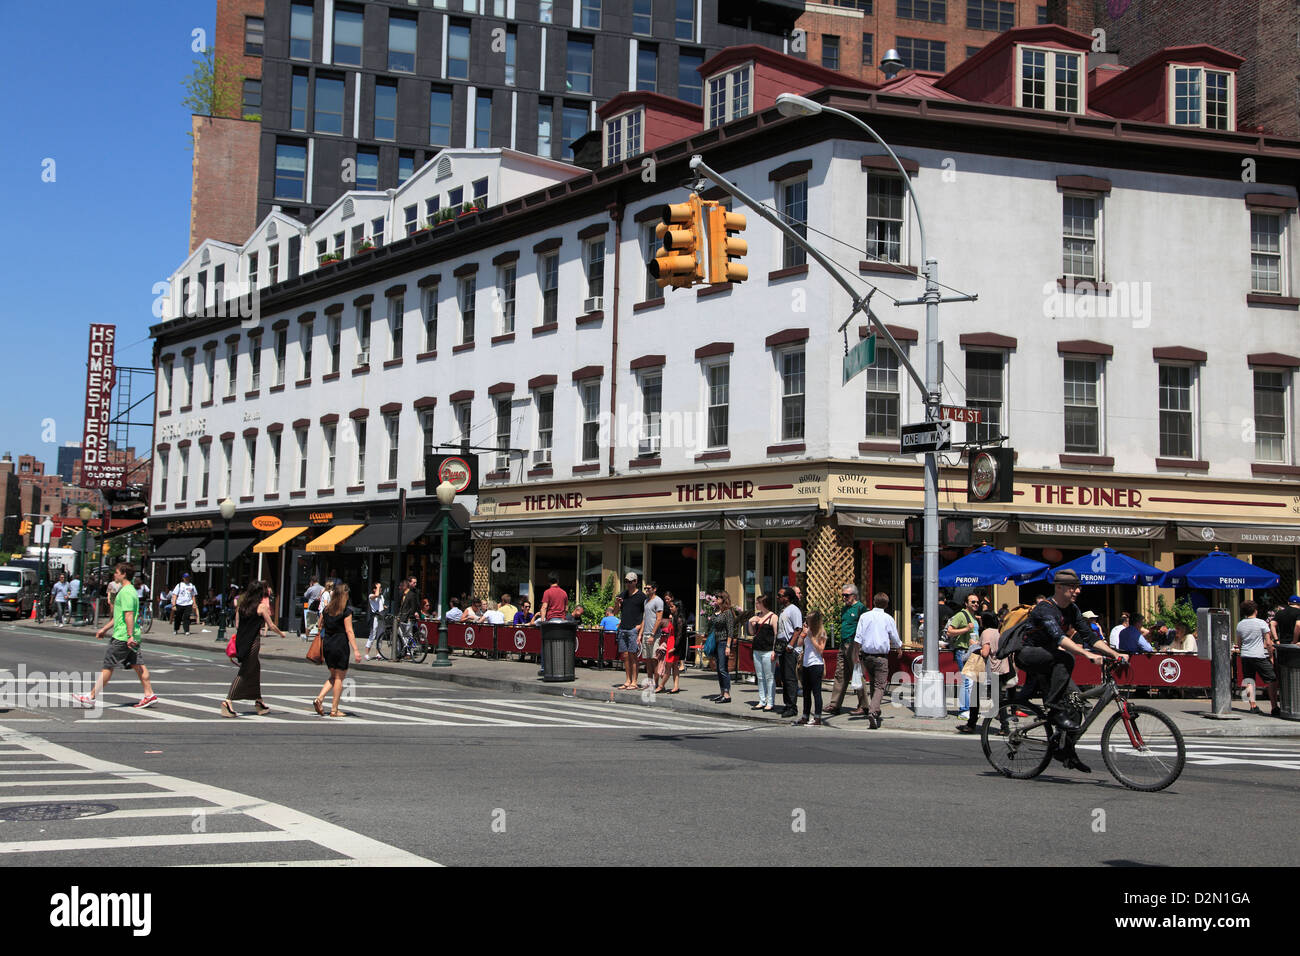 Meatpacking District, trendy downtown neighborhood, Manhattan, New York City, United States of America, North America - Stock Image